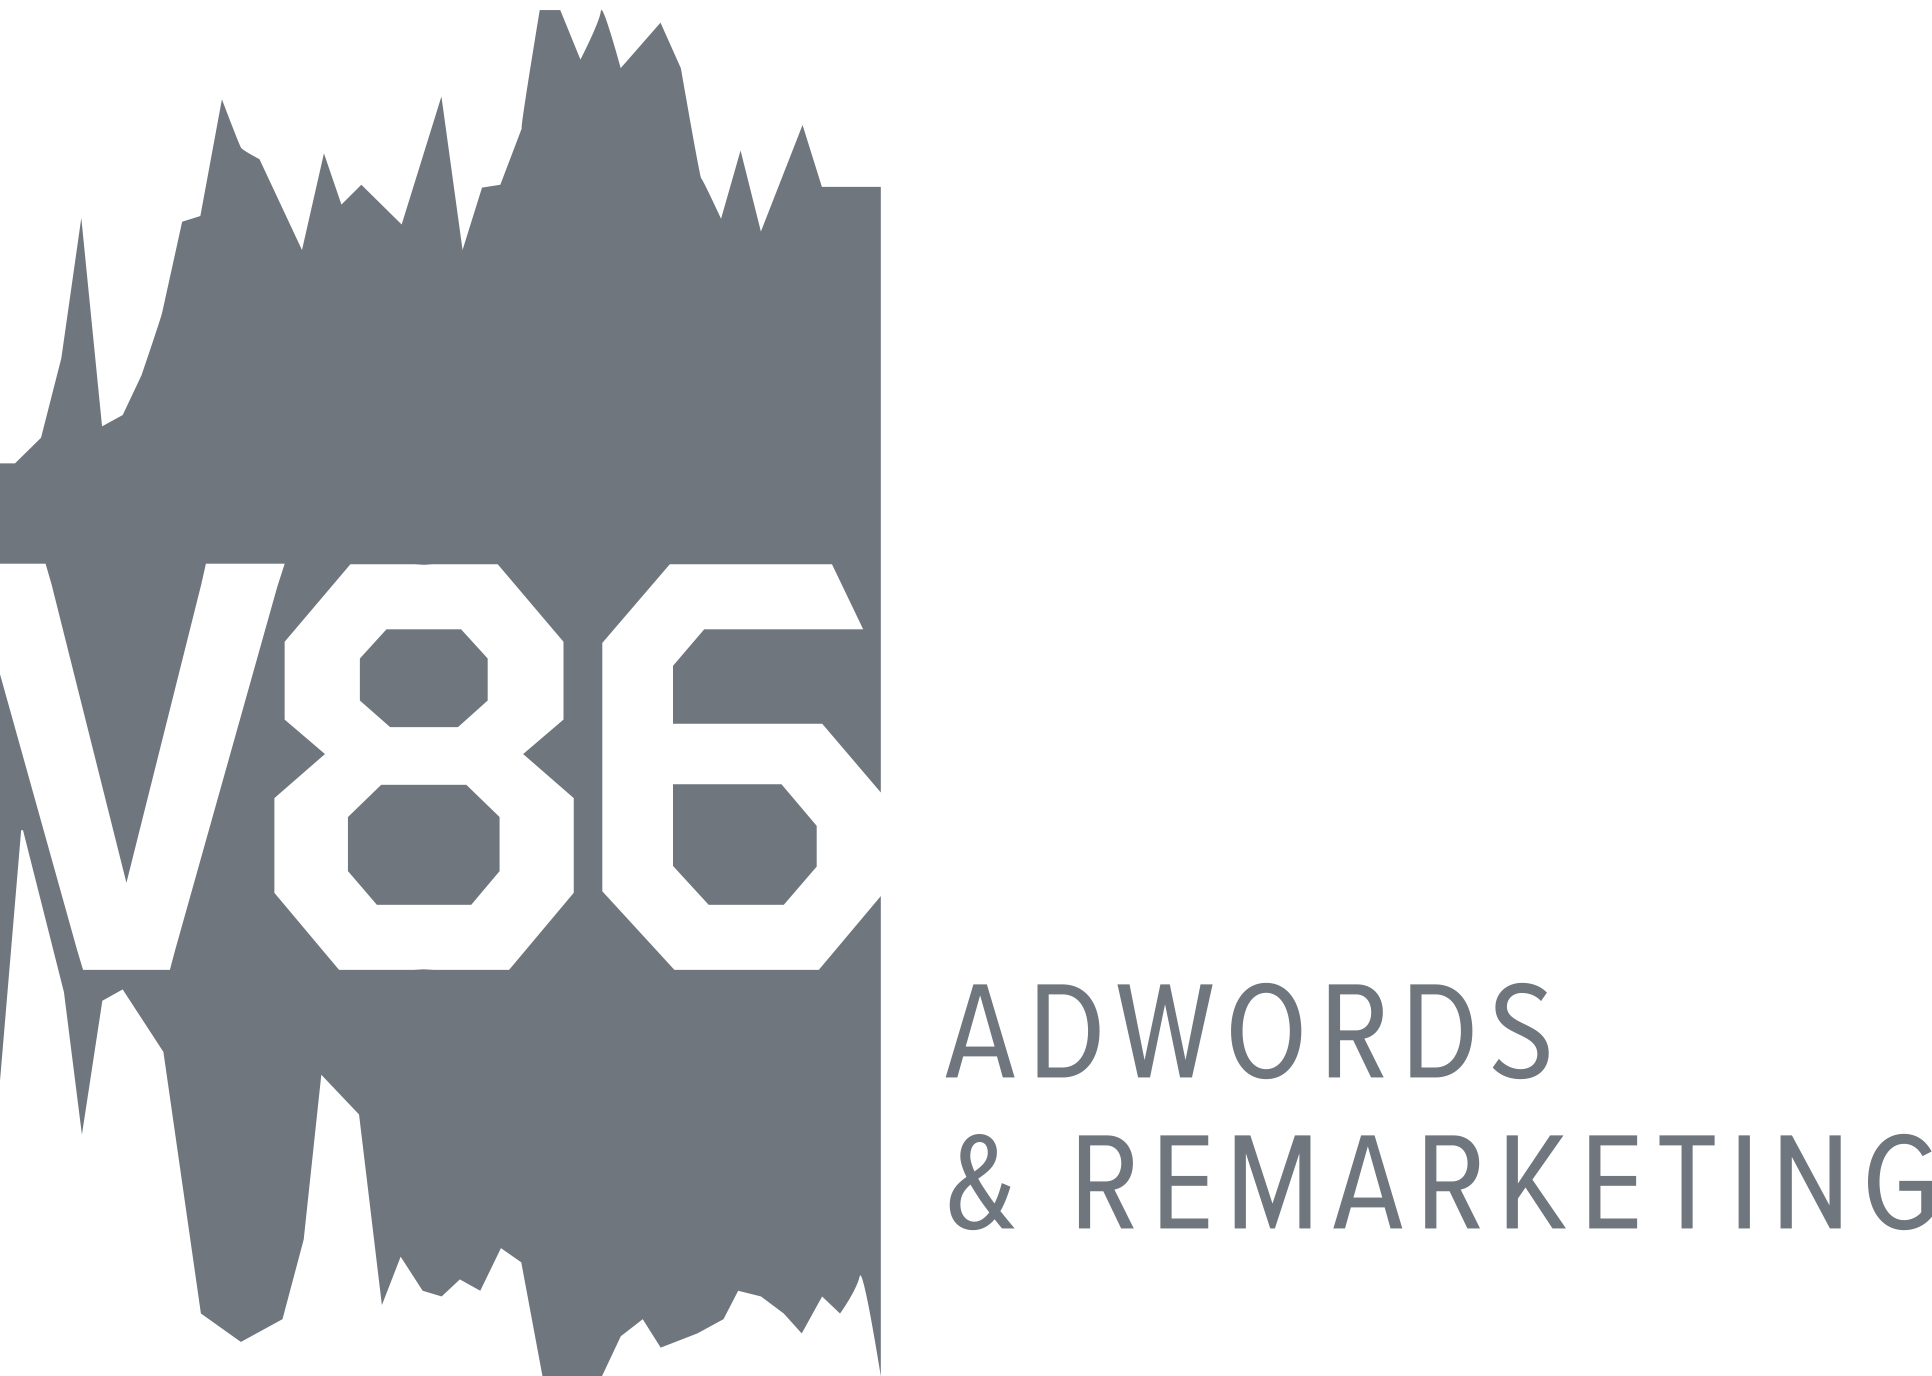 V86-Adwords-Remarketing.png